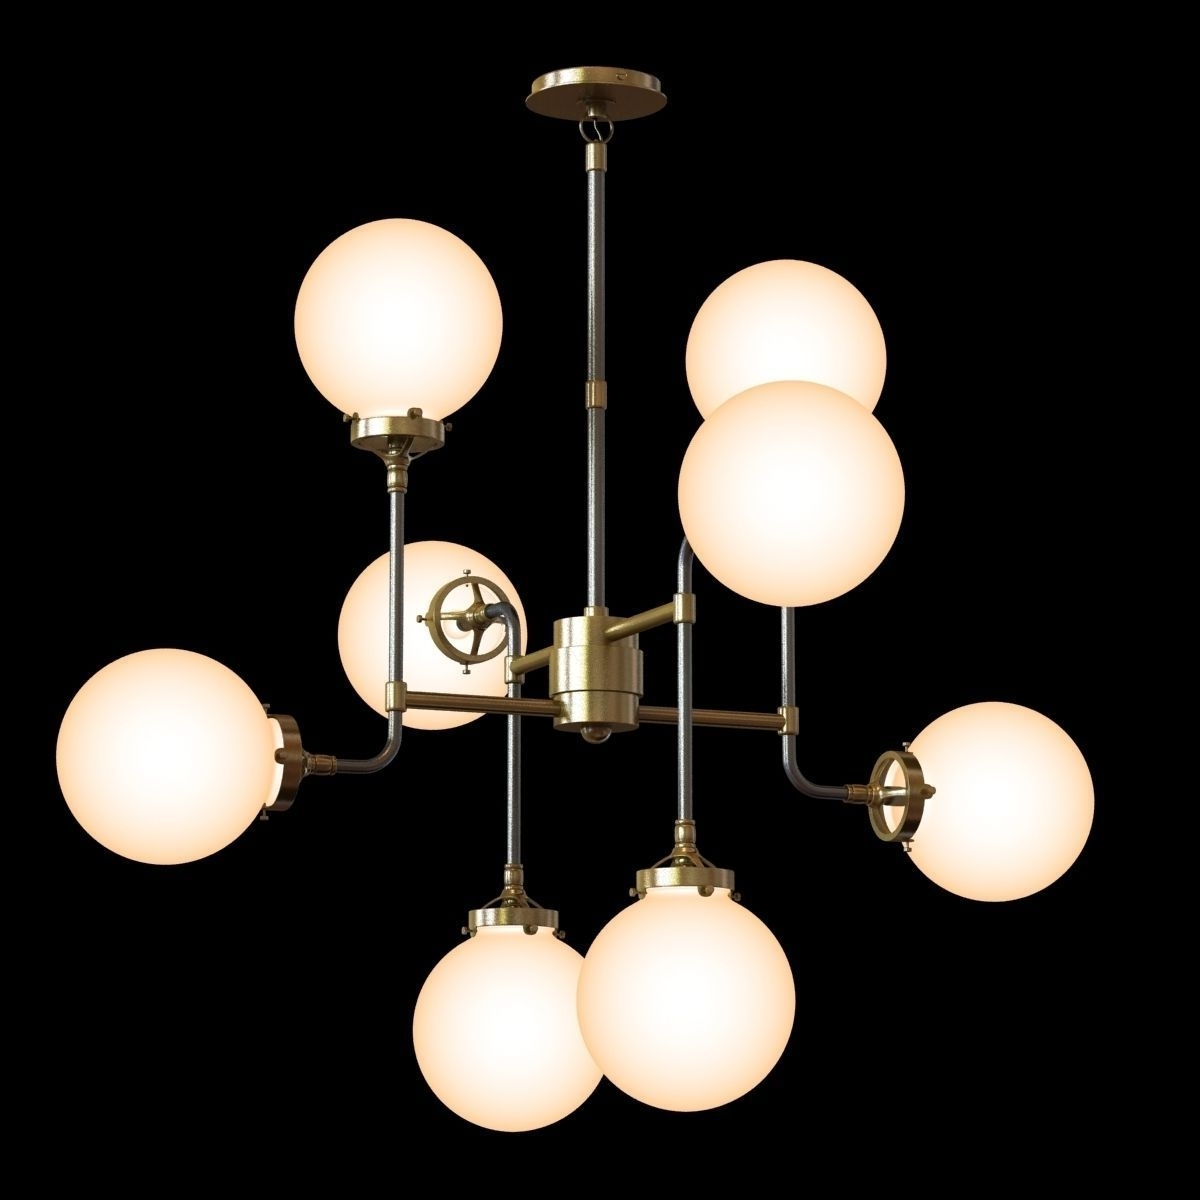 Current Chandelier Globe With Restoration Hardware Bistro Globe Milk Glass 8 Light Chandelier 3D (View 9 of 20)